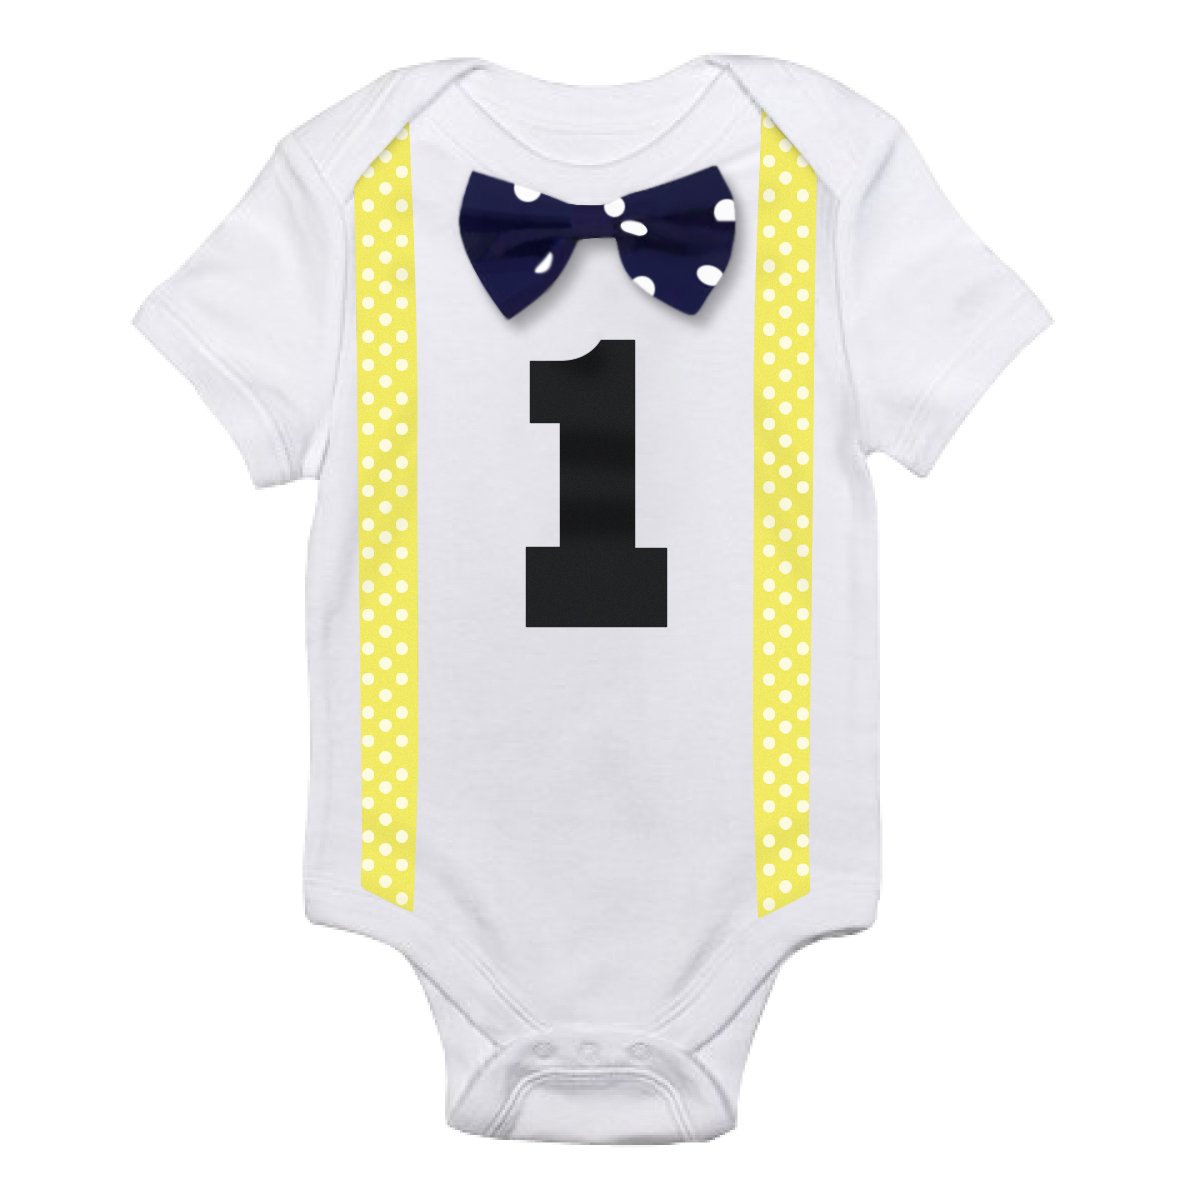 Baby Clothing Bow Body Rompers Baby Boy Girl Clothing 1 Year 1st Birthday Clothes Newborn Baby Clothes Jumpsuit for Bebes